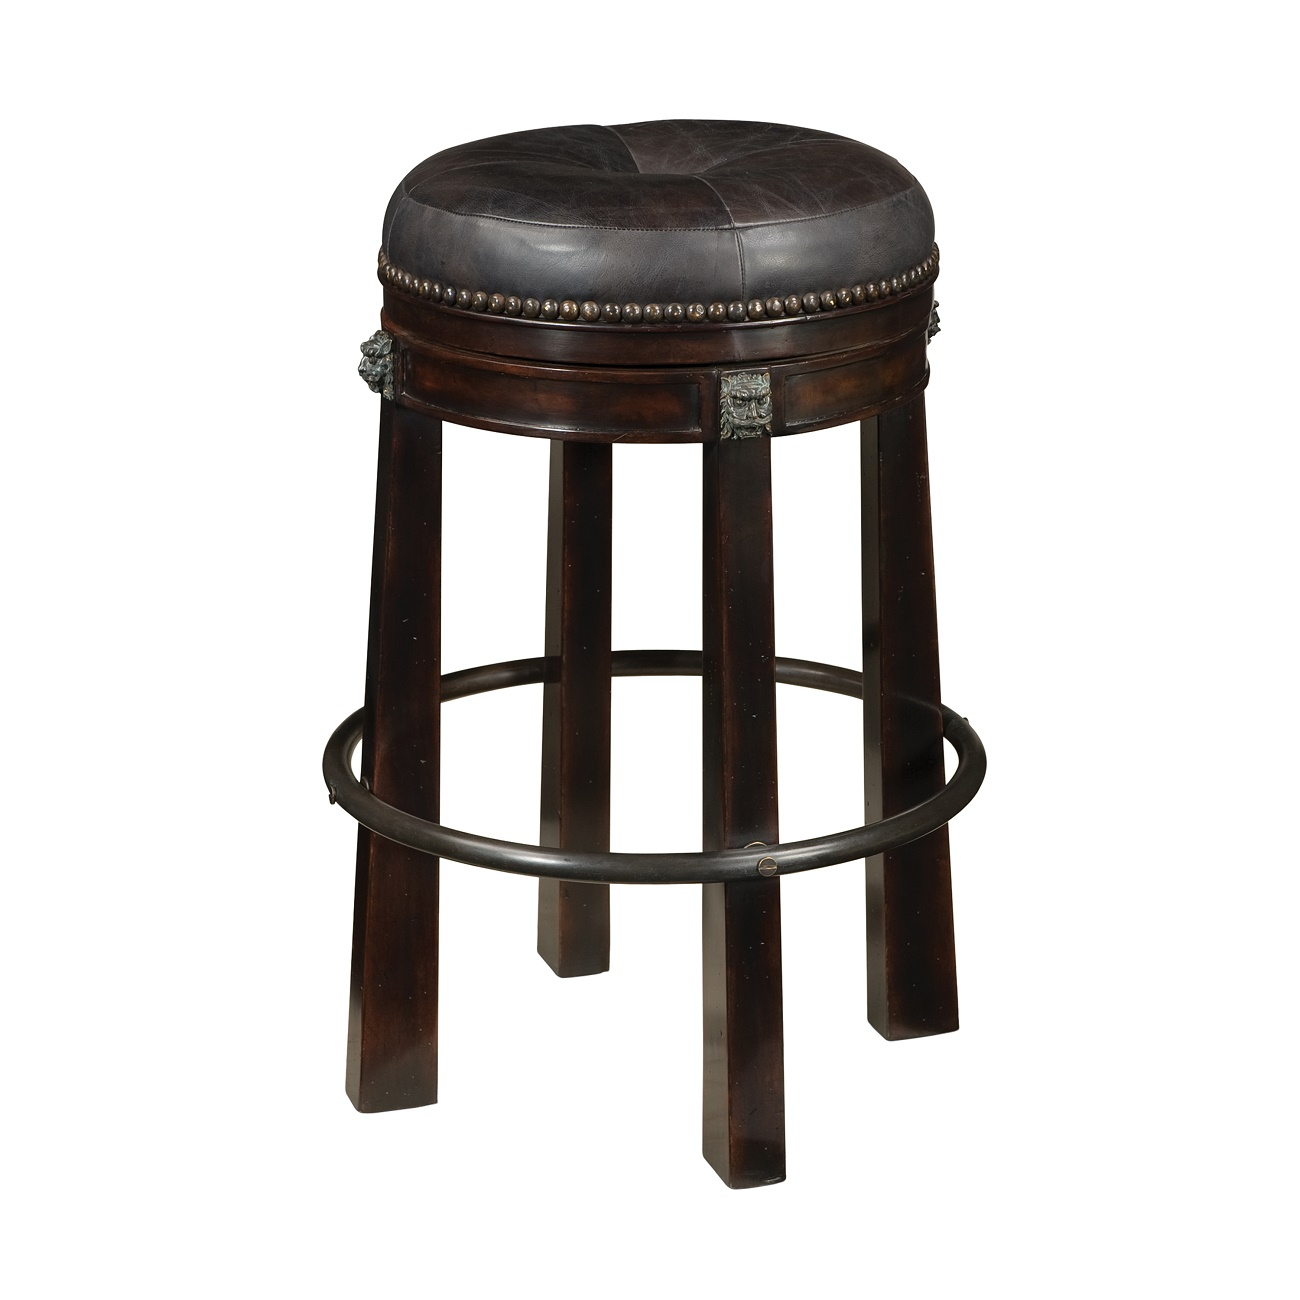 Be Seated Bar Stool theodore alexander 4202 038